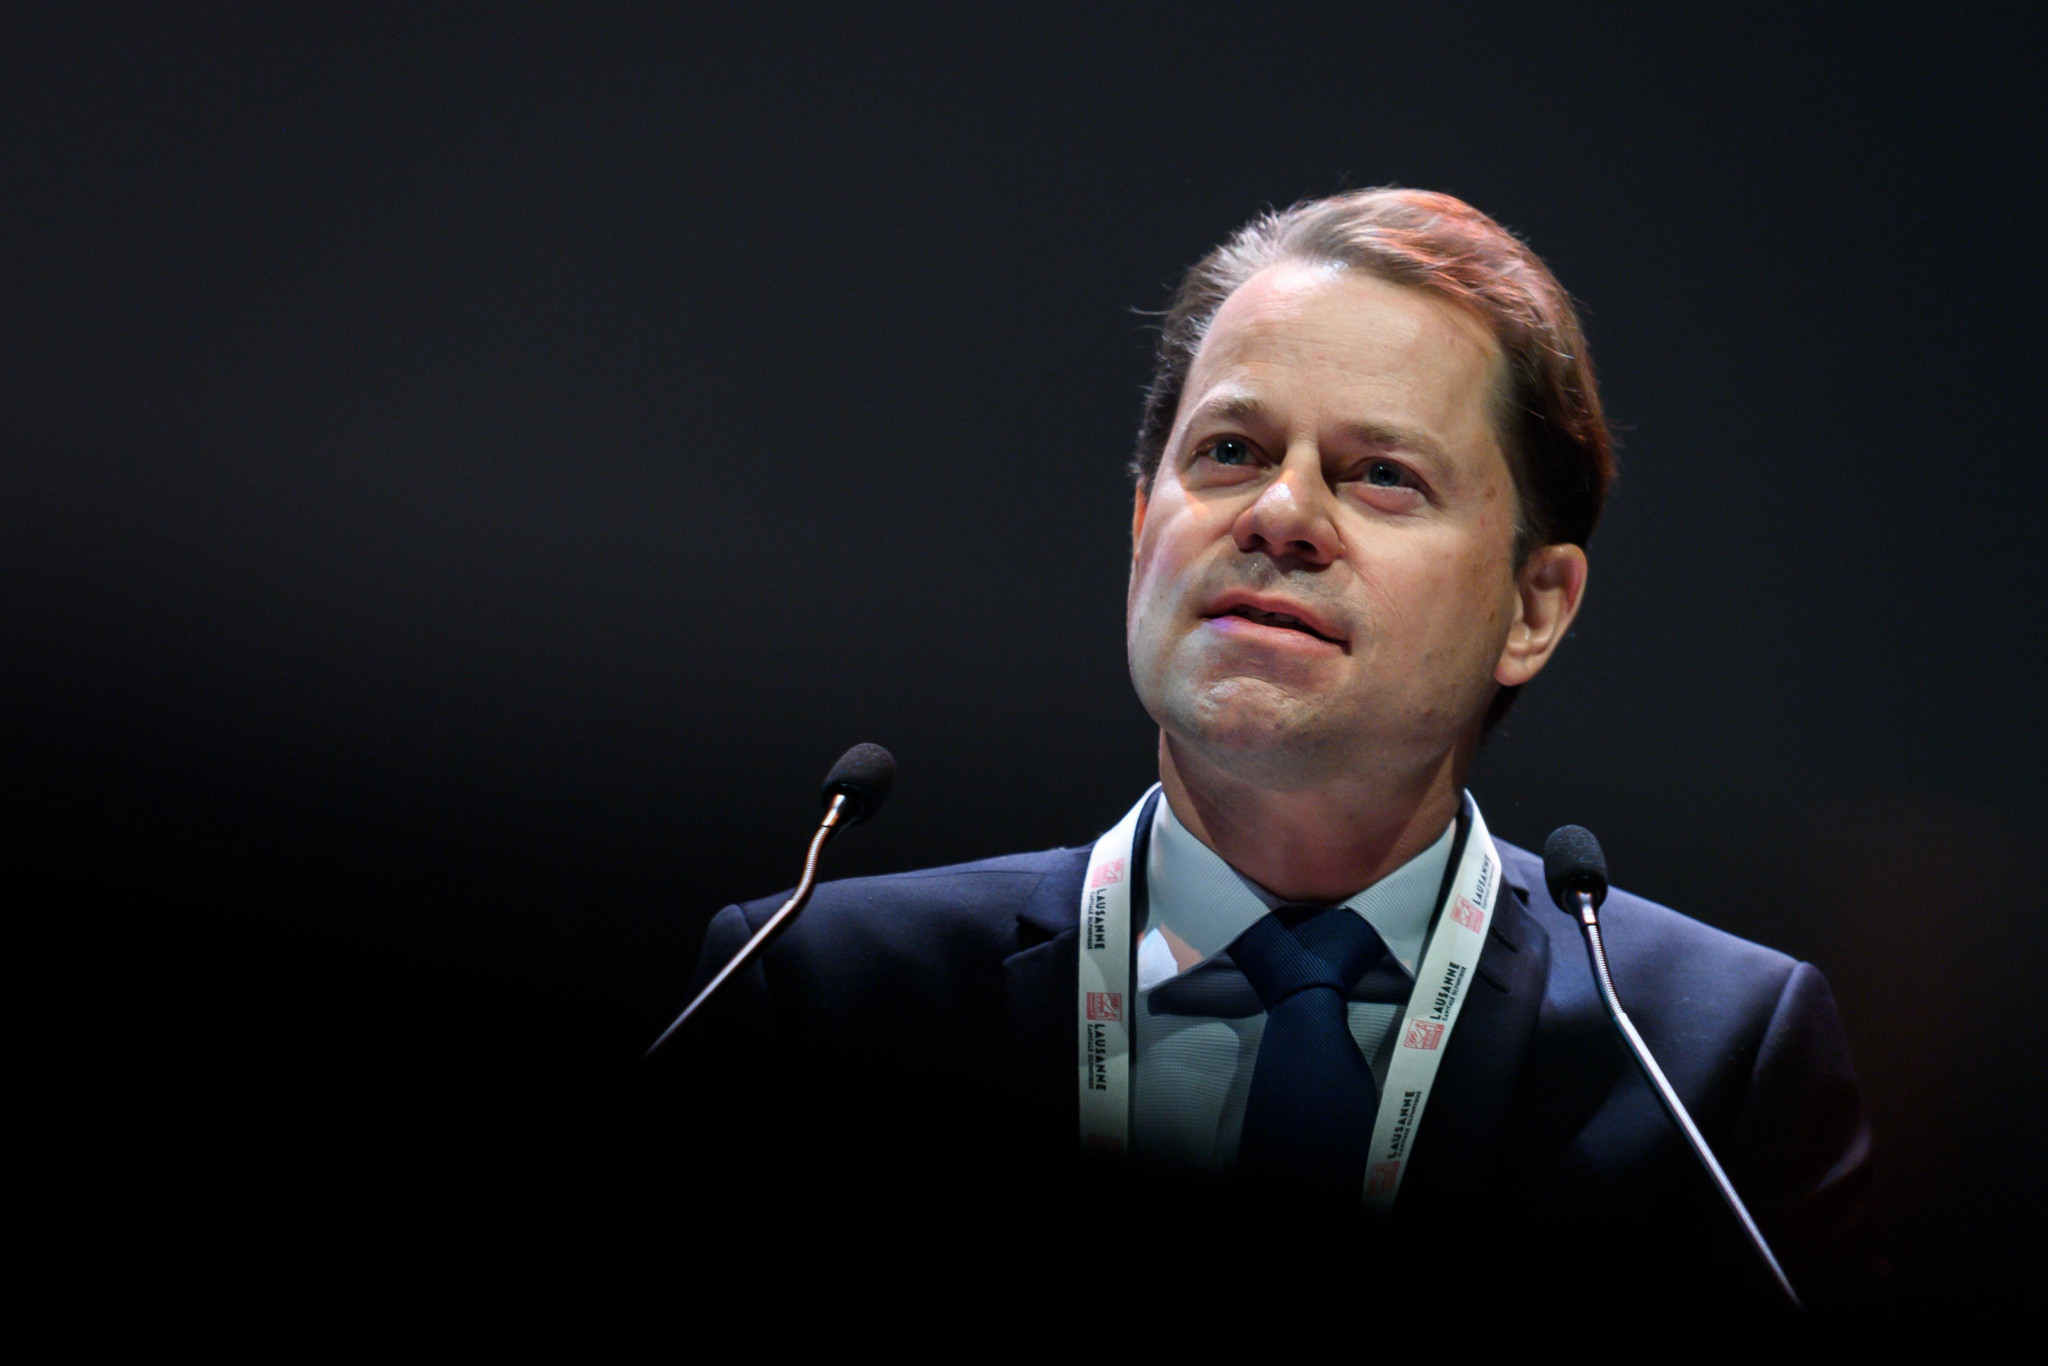 WADA director general Niggli marks anniversary of Council of Europe's Anti-Doping Convention